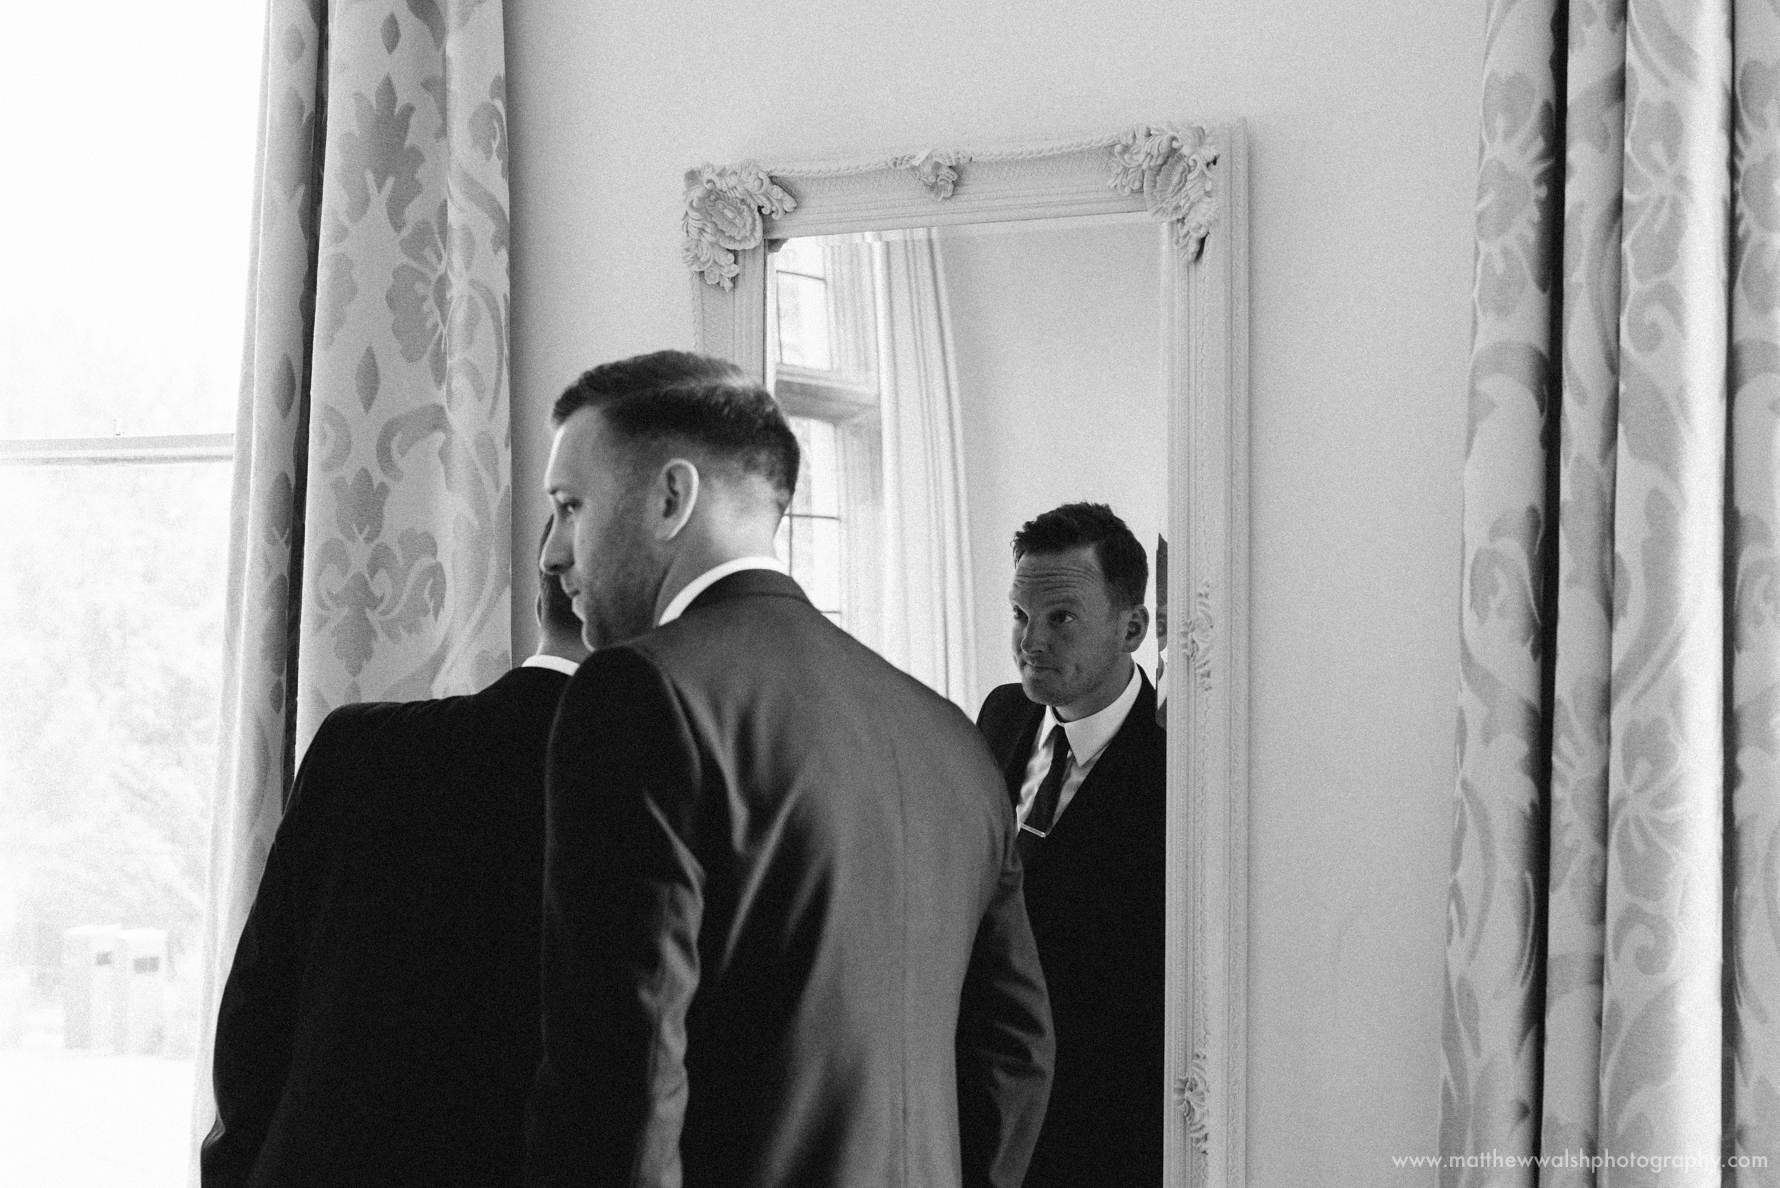 Best man and best man check themselves in the mirror